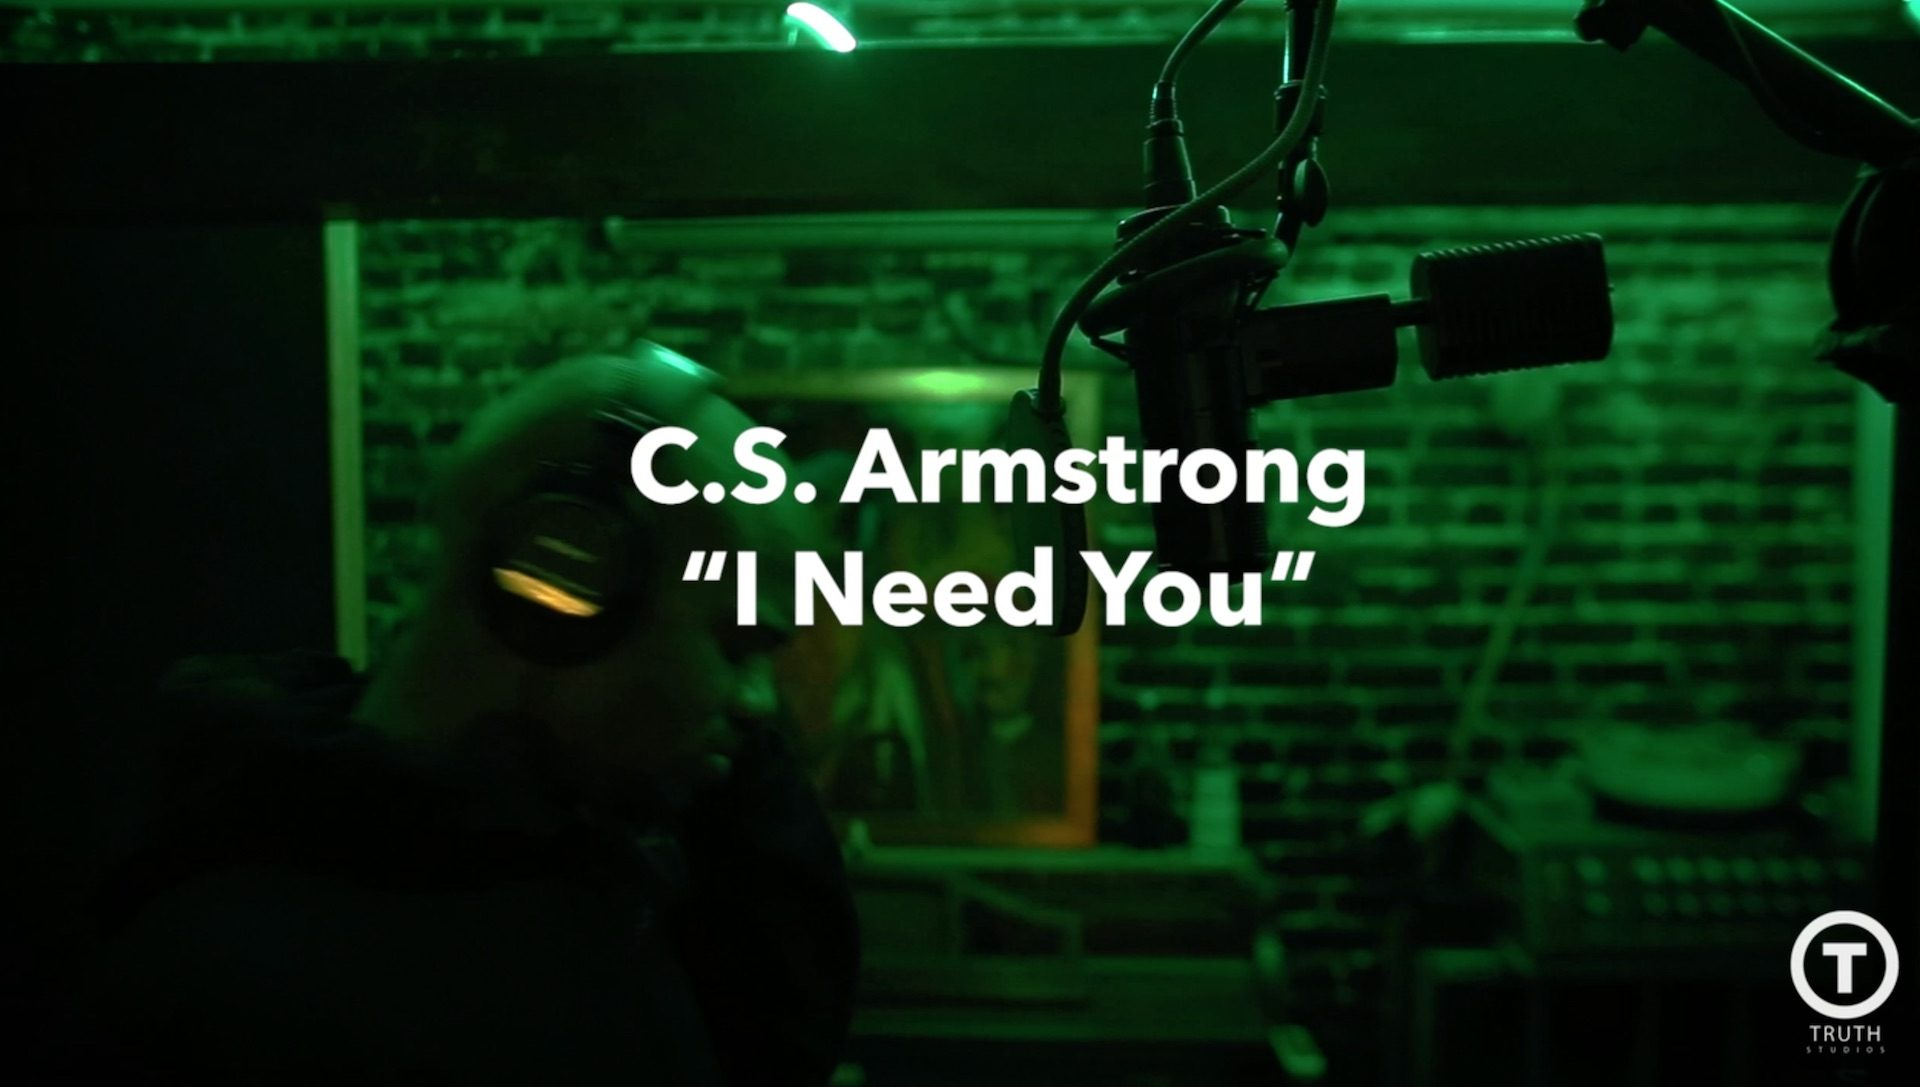 C.S. Armstrong I Need You Truth Studios #onetake